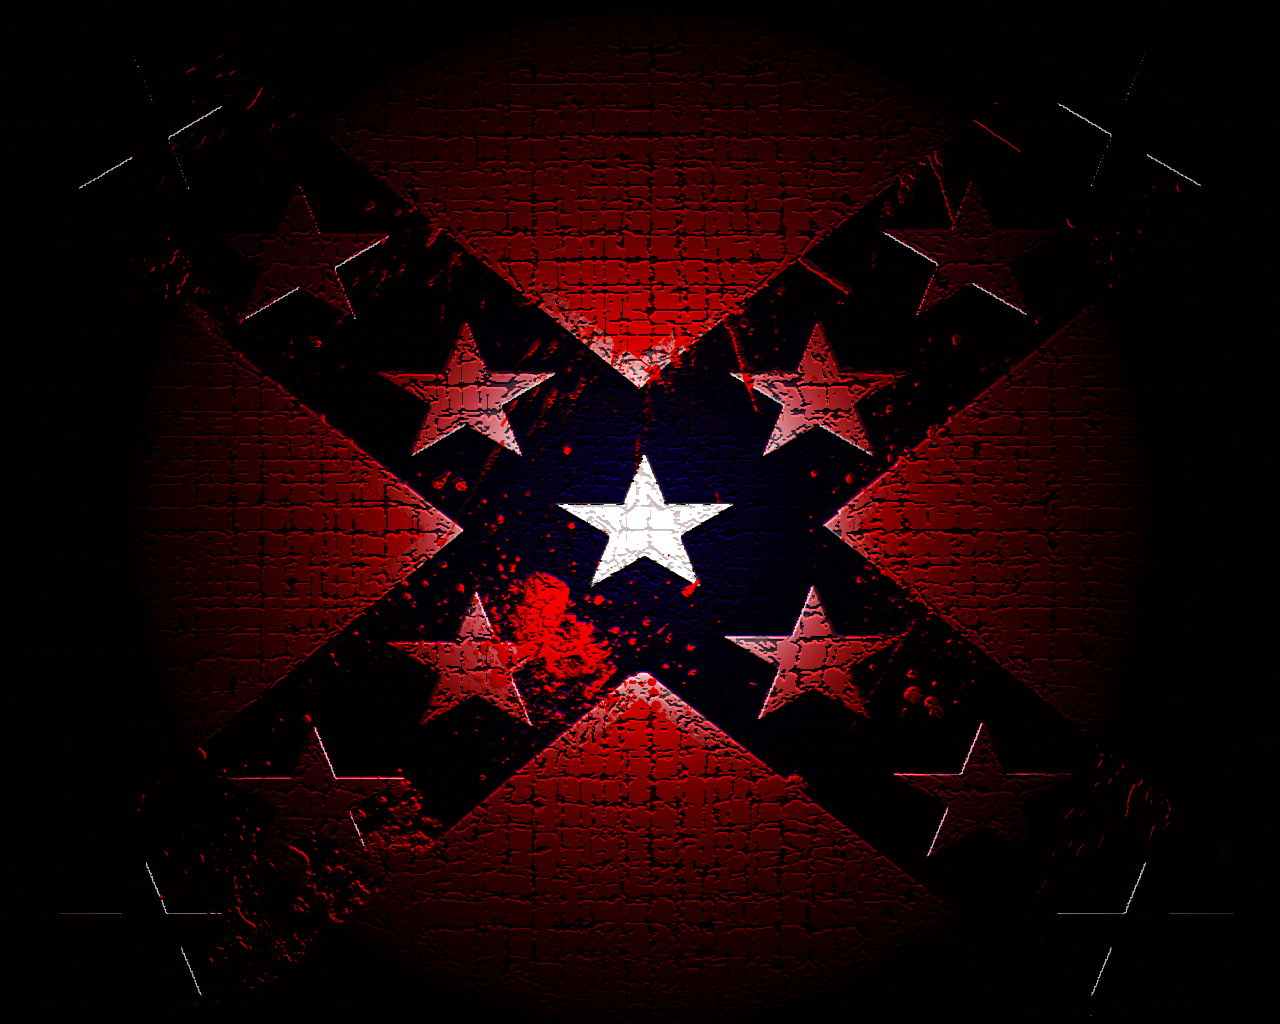 Rebel flagjpg Phone Wallpaper By Babygurl24799 1280x1024